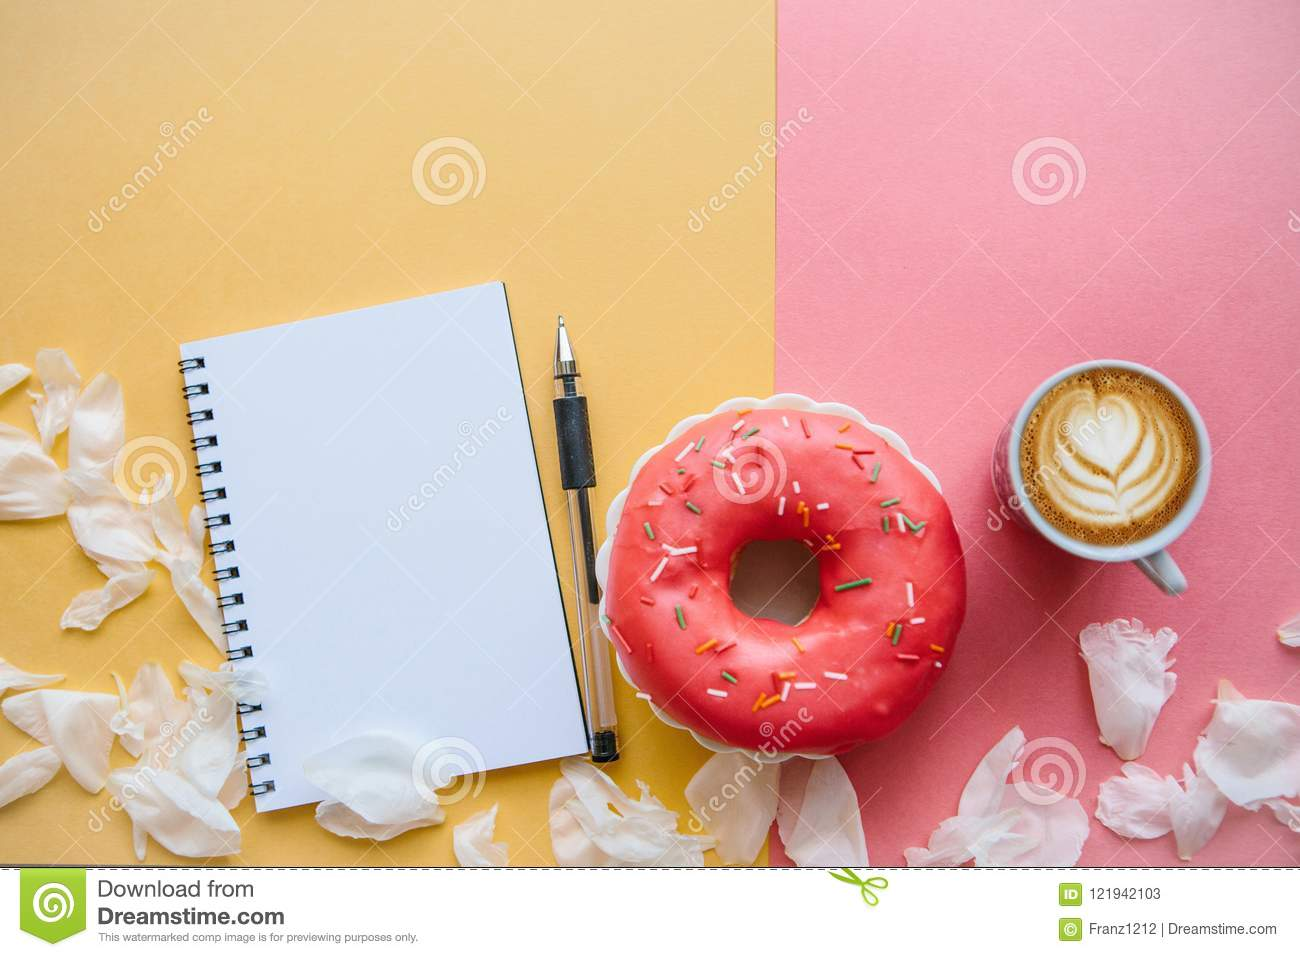 Coffee cappuccino and donut on a colored surface close up of a coffee cappuccino and donut on a colored surface close up of a white flower mightylinksfo